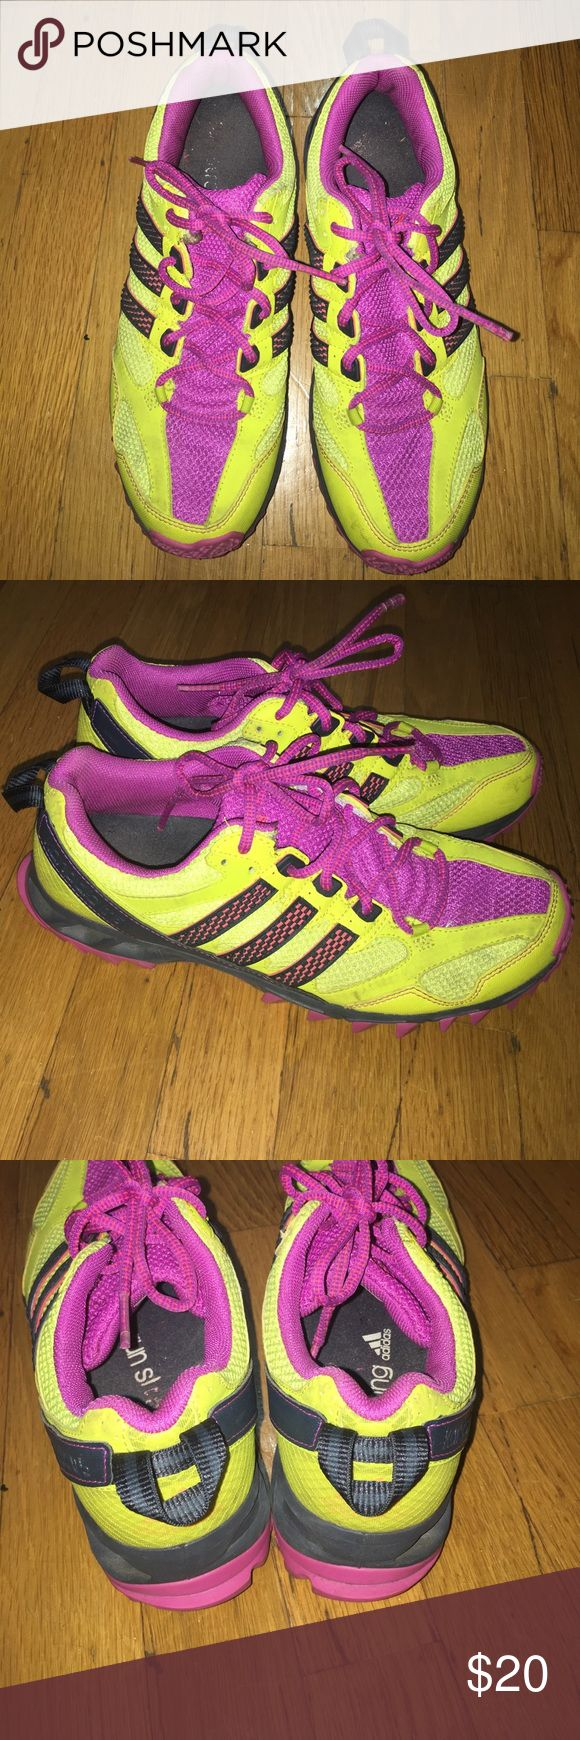 Adidas Kanadia tr5 Sneaker Sz 9.5 Gently worn. Great for trails, hiking, outdoor workouts. adidas Shoes Sneakers